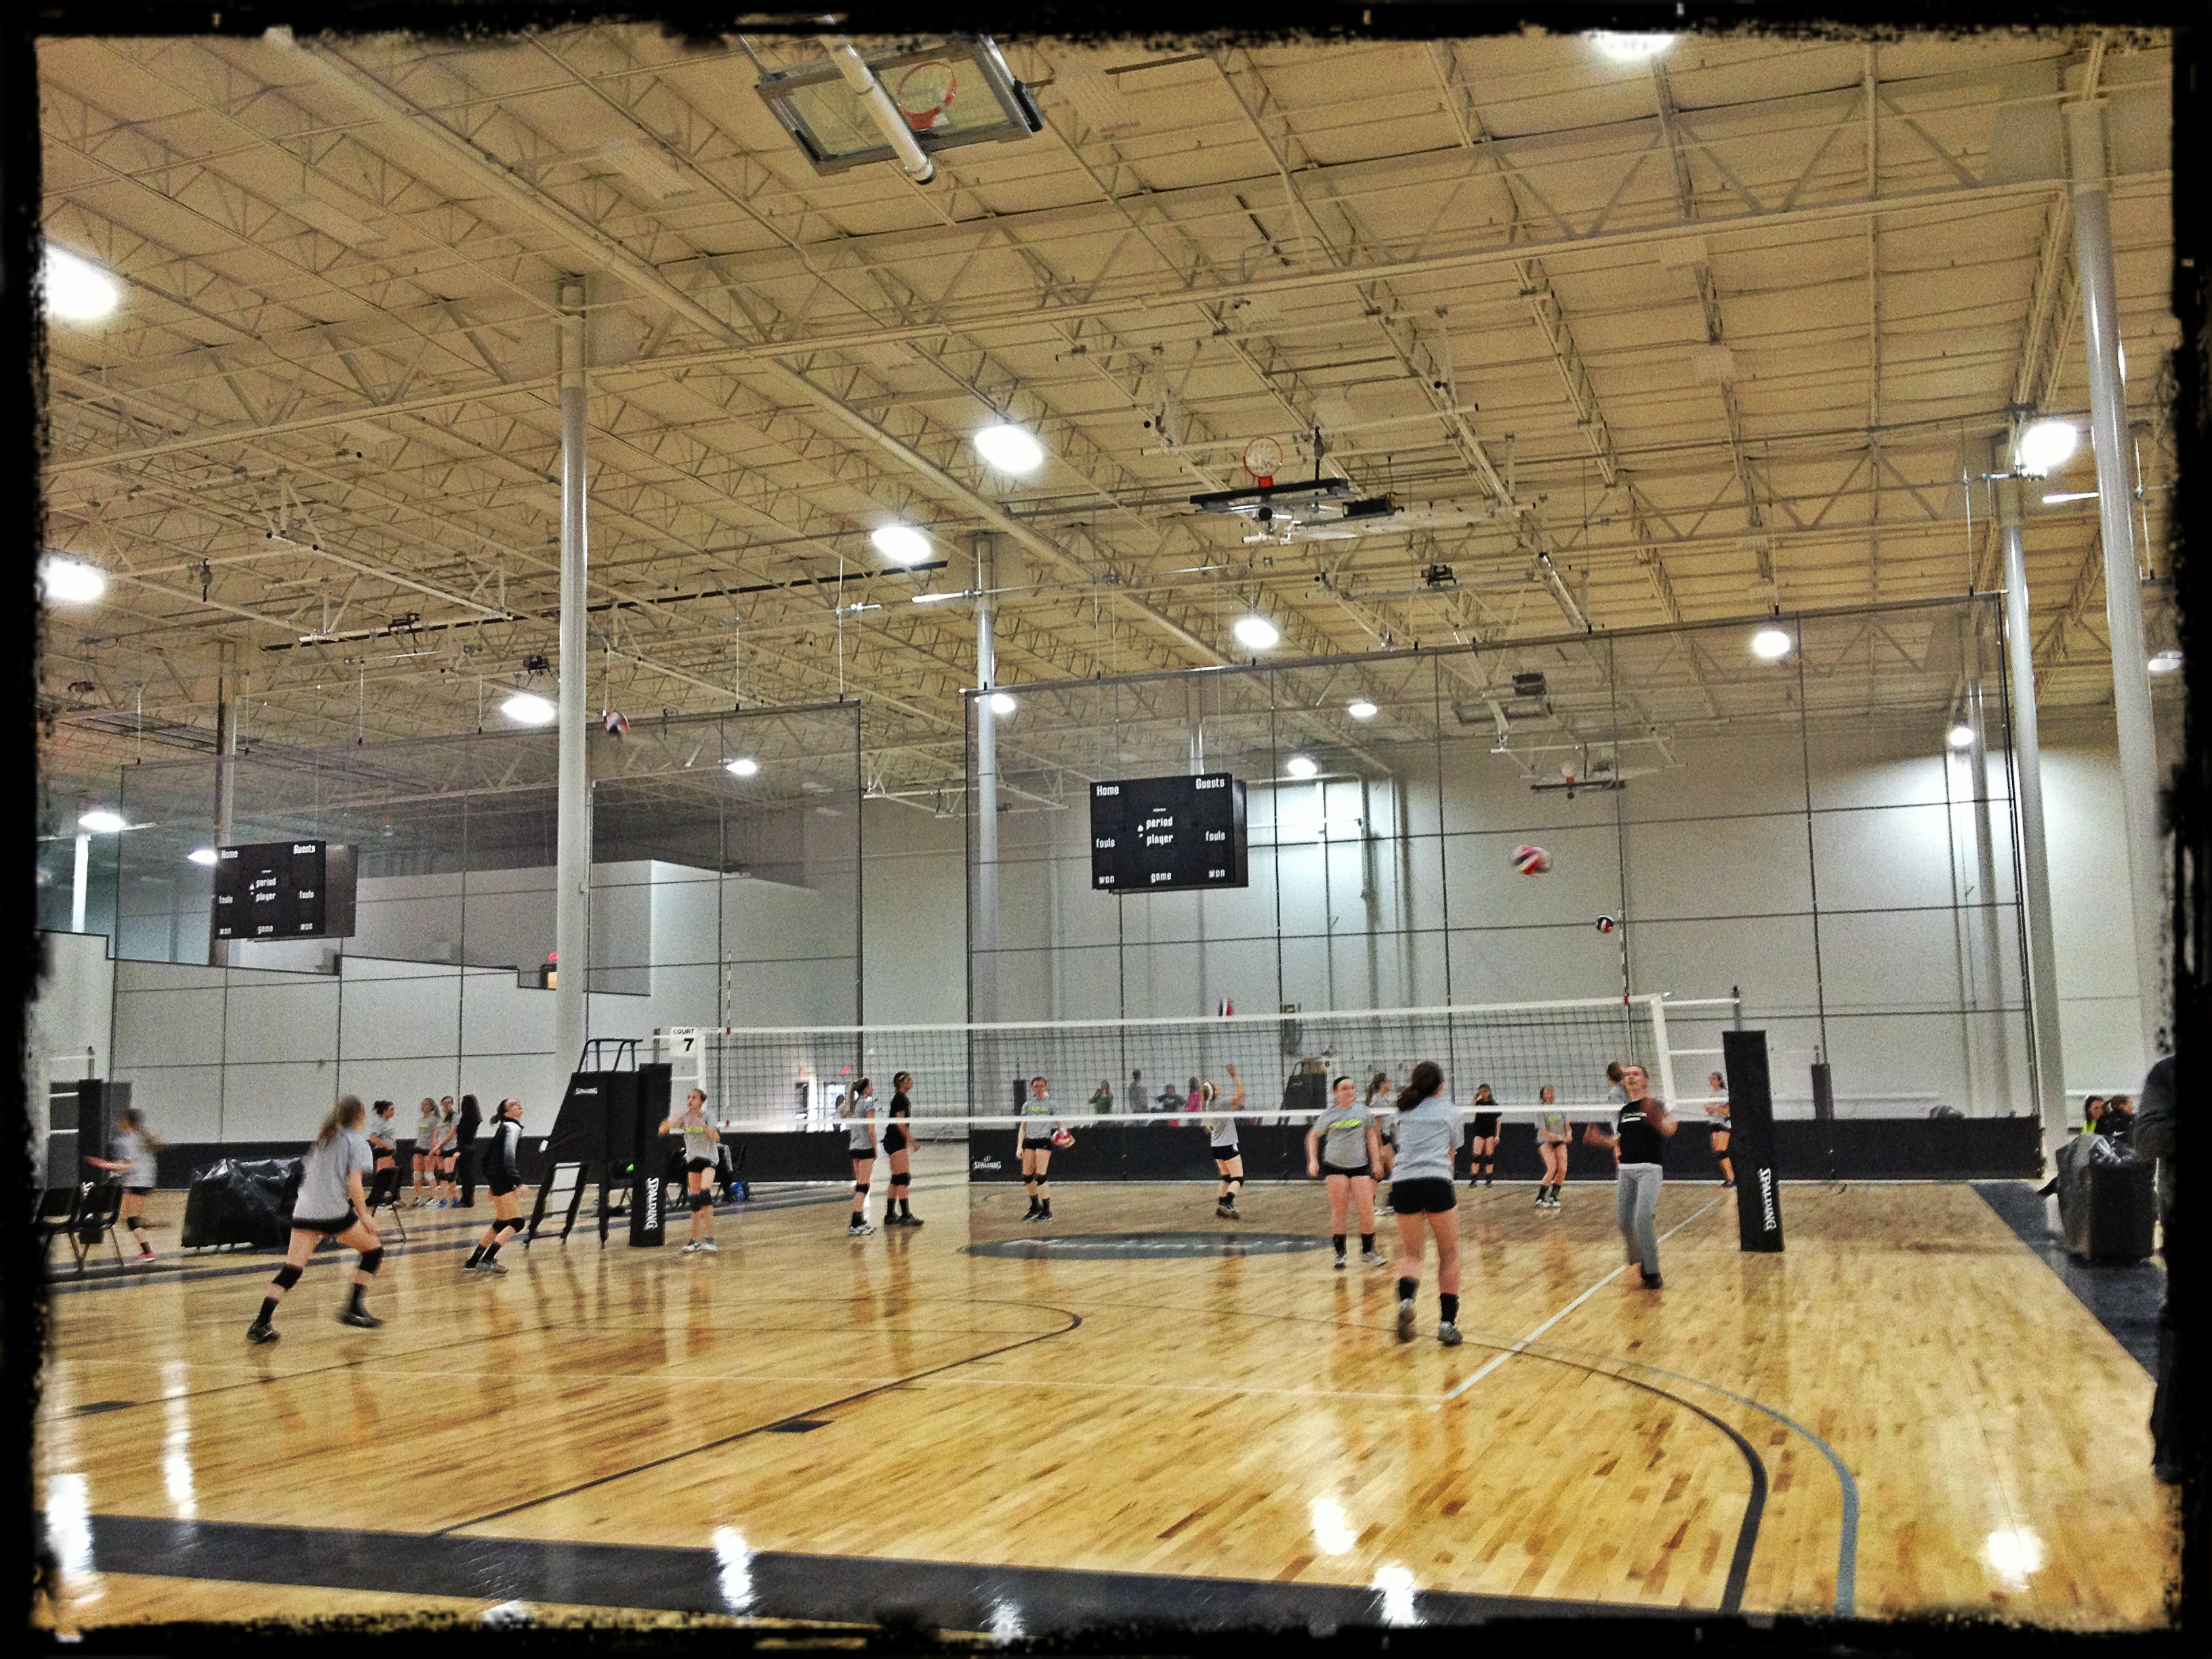 Volleyball At Spooky Nook Sports Spooky Nook Spooky Nook Sports Lancaster Attractions